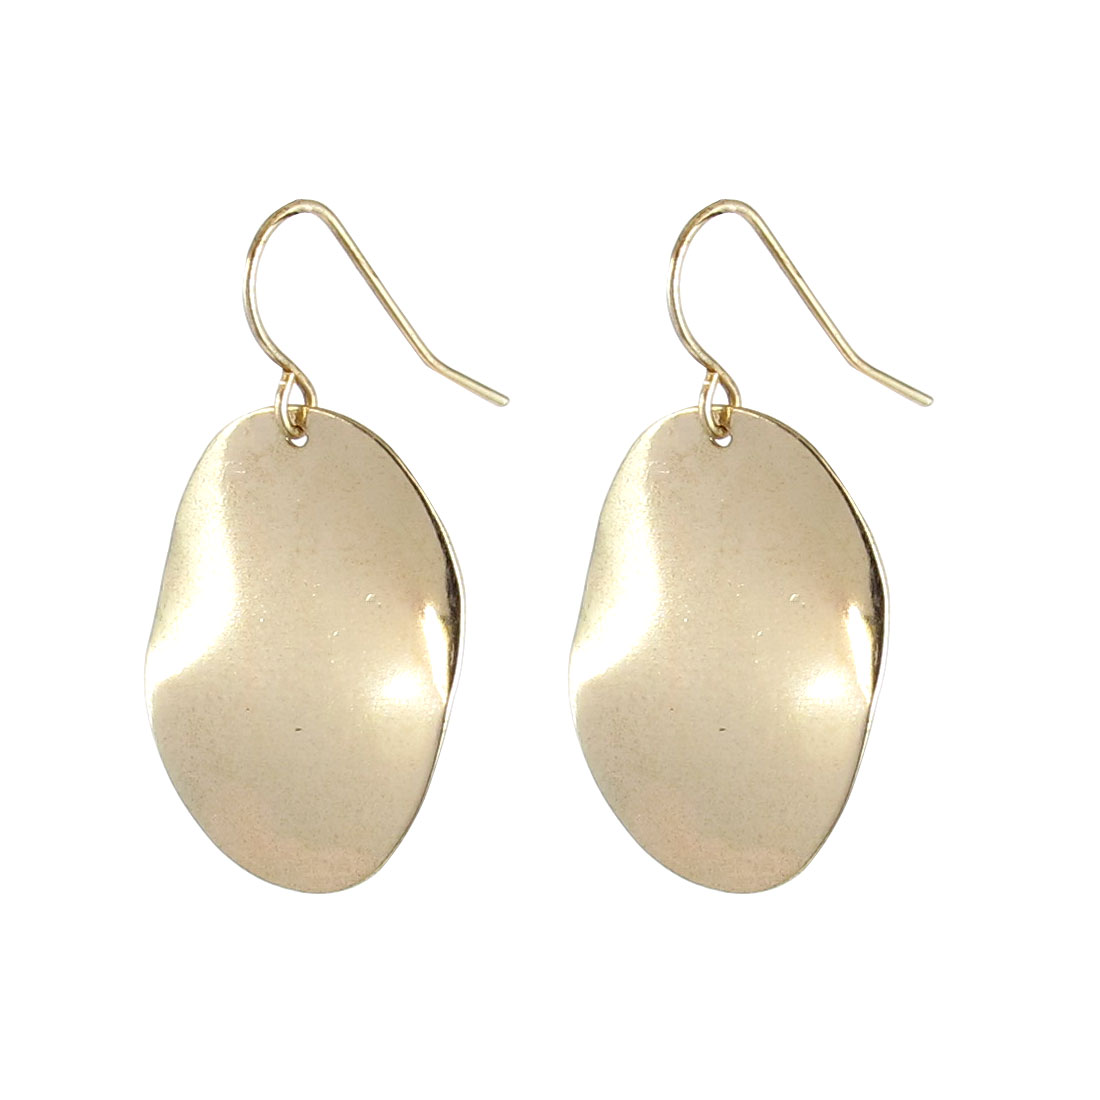 "Women Metal Oval Shape Pendant Hook Earrings Earbobs Eardrop Gold Tone 1.4"" Length Pair"